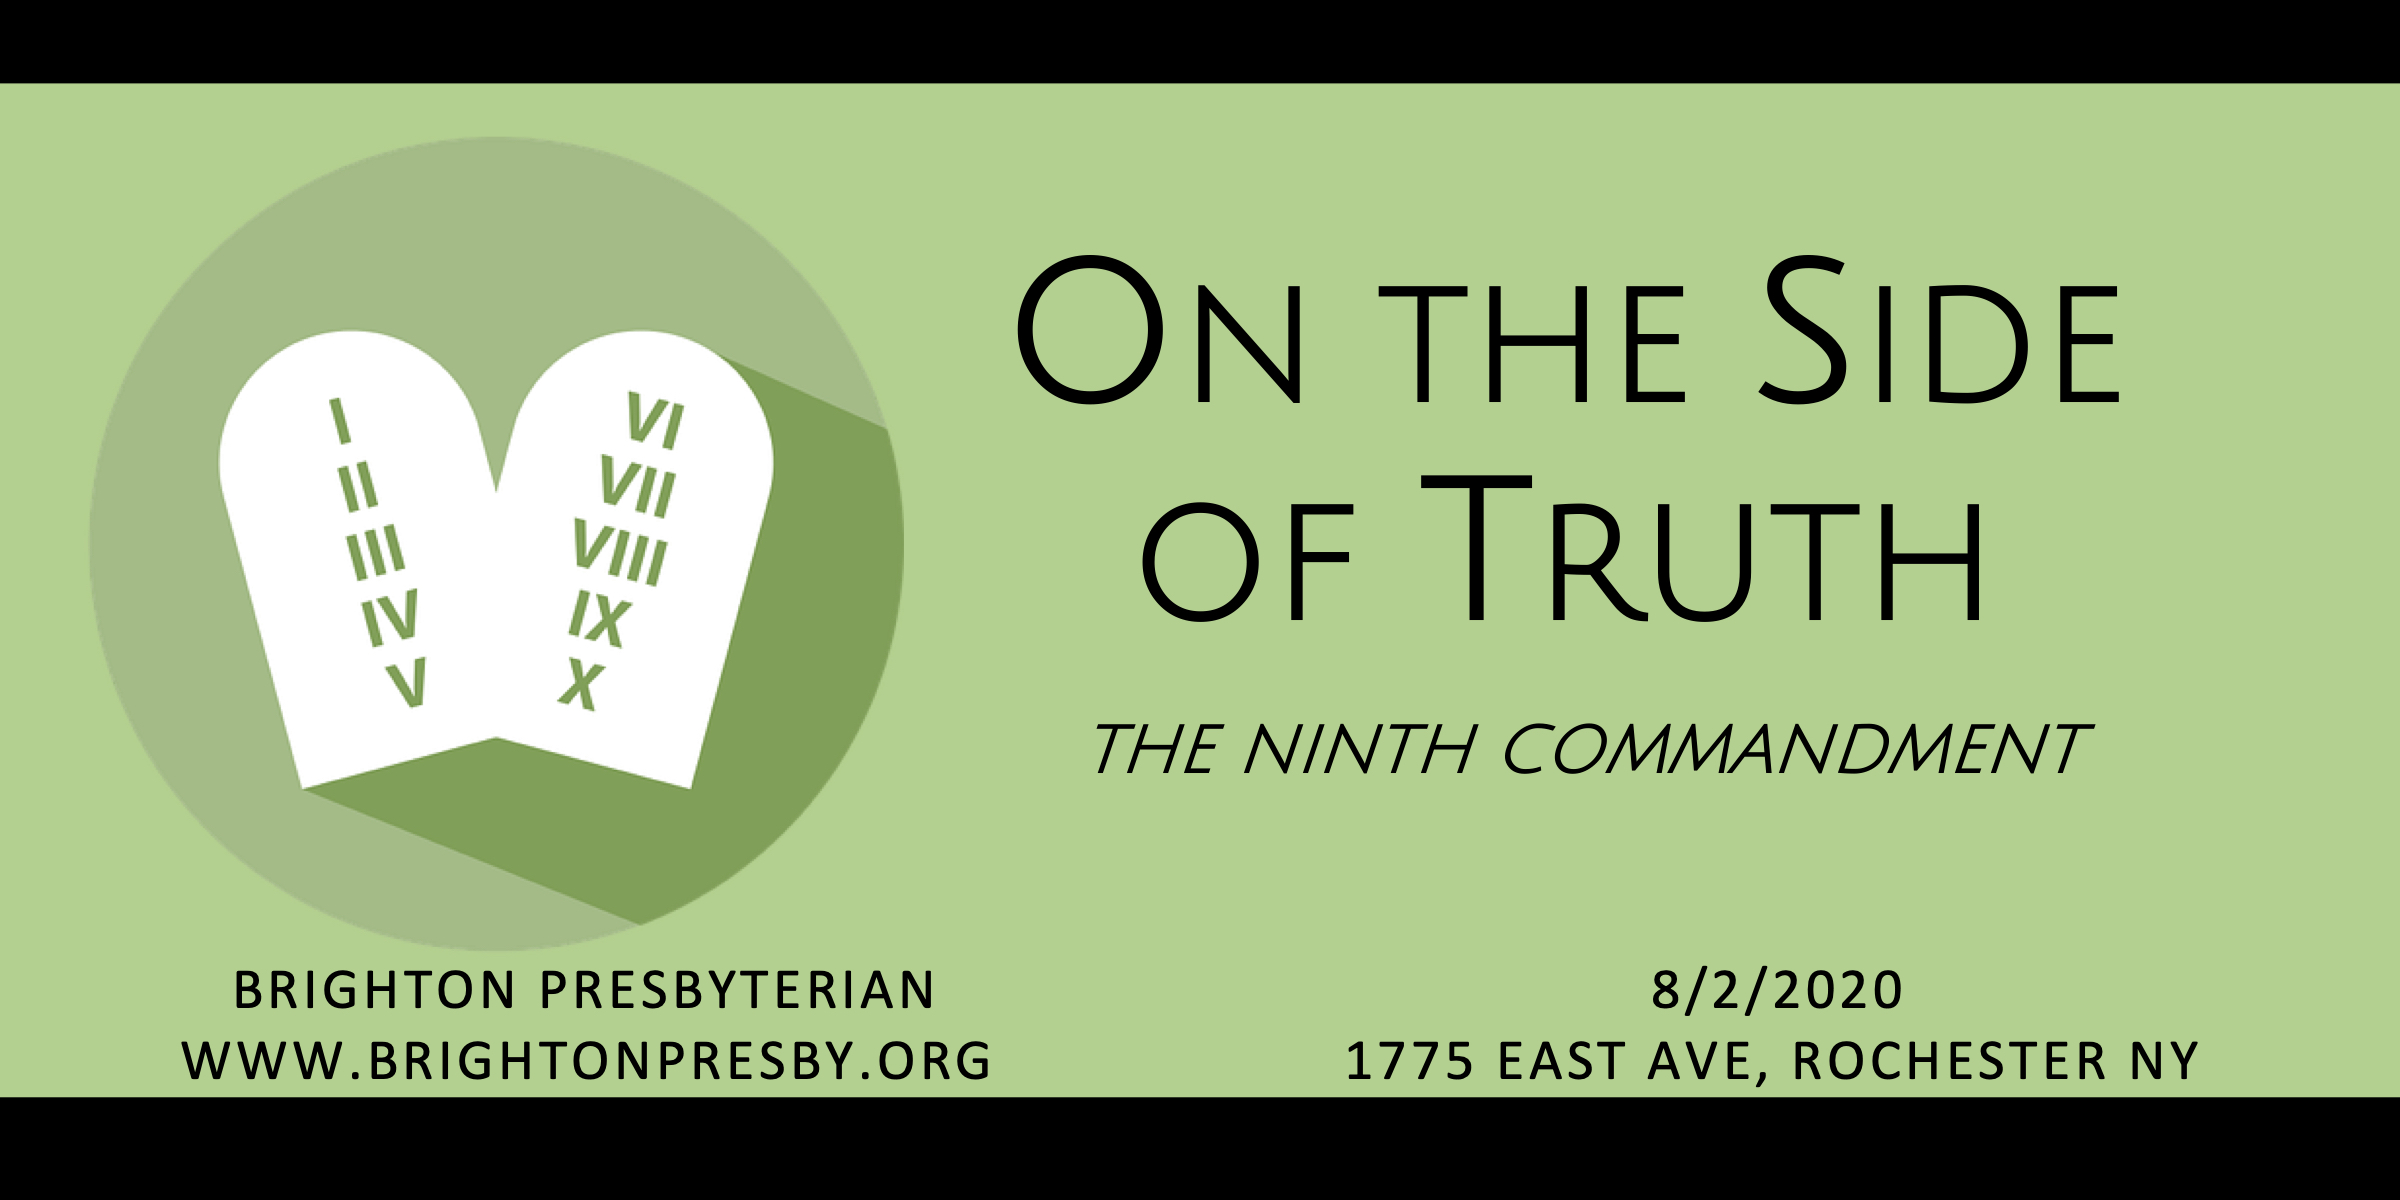 On the Side of Truth (The Ninth Commandment)